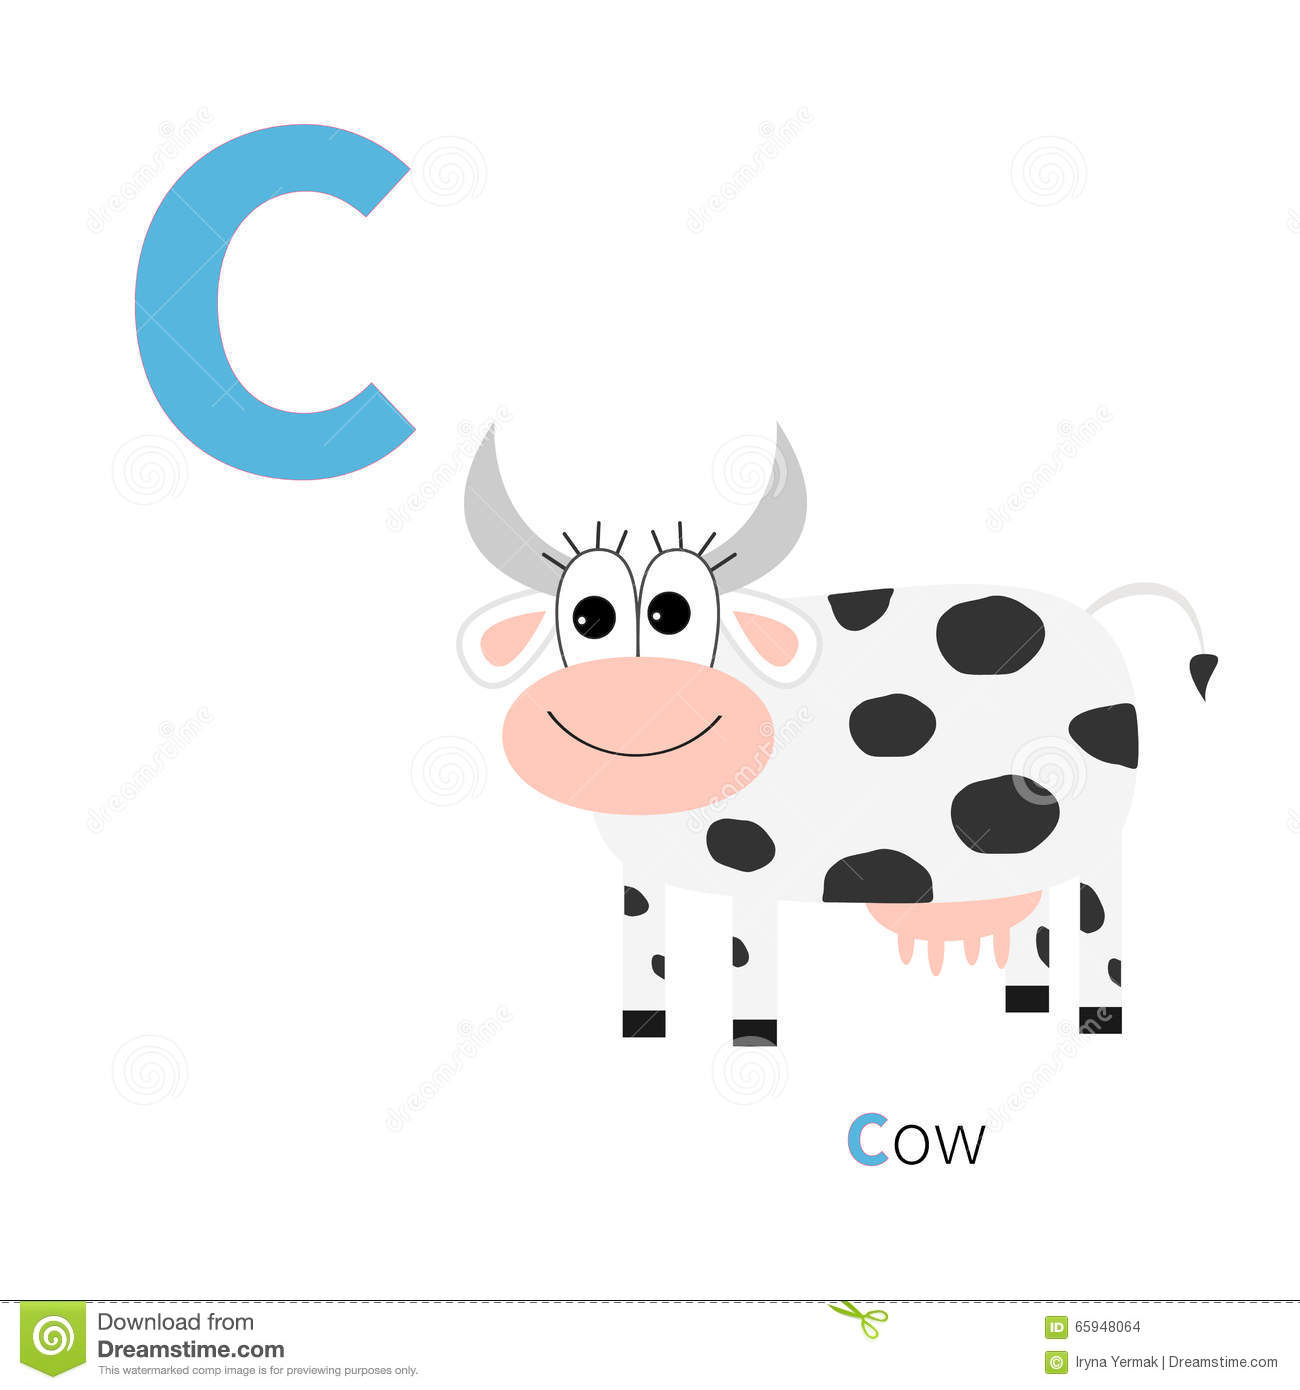 Letter C Cow Zoo Alphabet English Abc With Animals Education Cards For Kids White Background